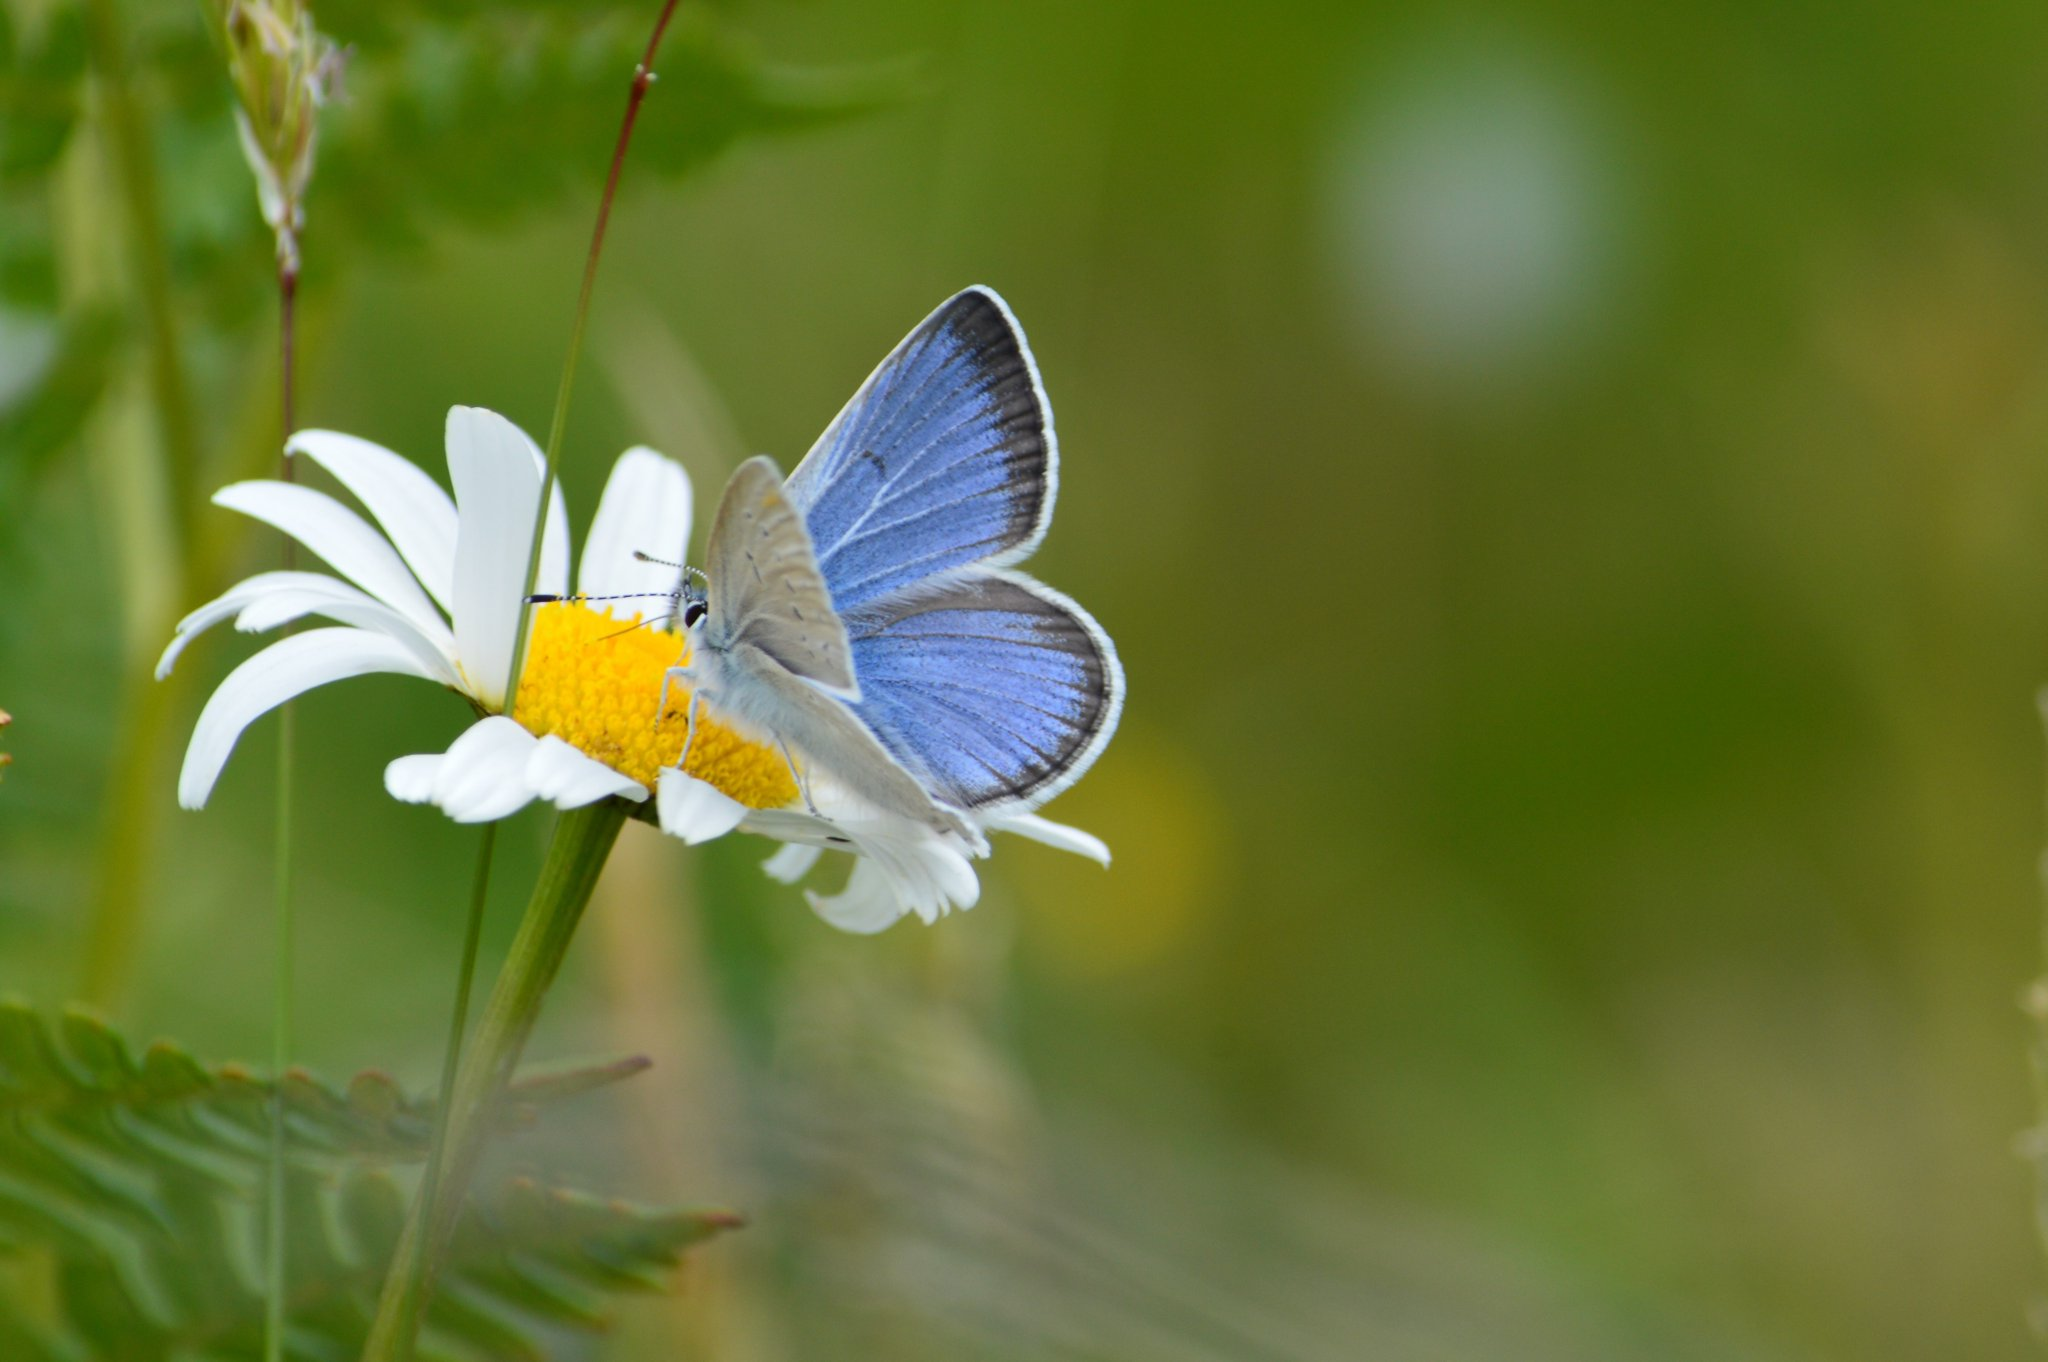 Resting on a single-stemmed white flower with a yellow center, a butterfly shows its wings that are blue and black on top and white-gray on the underside.